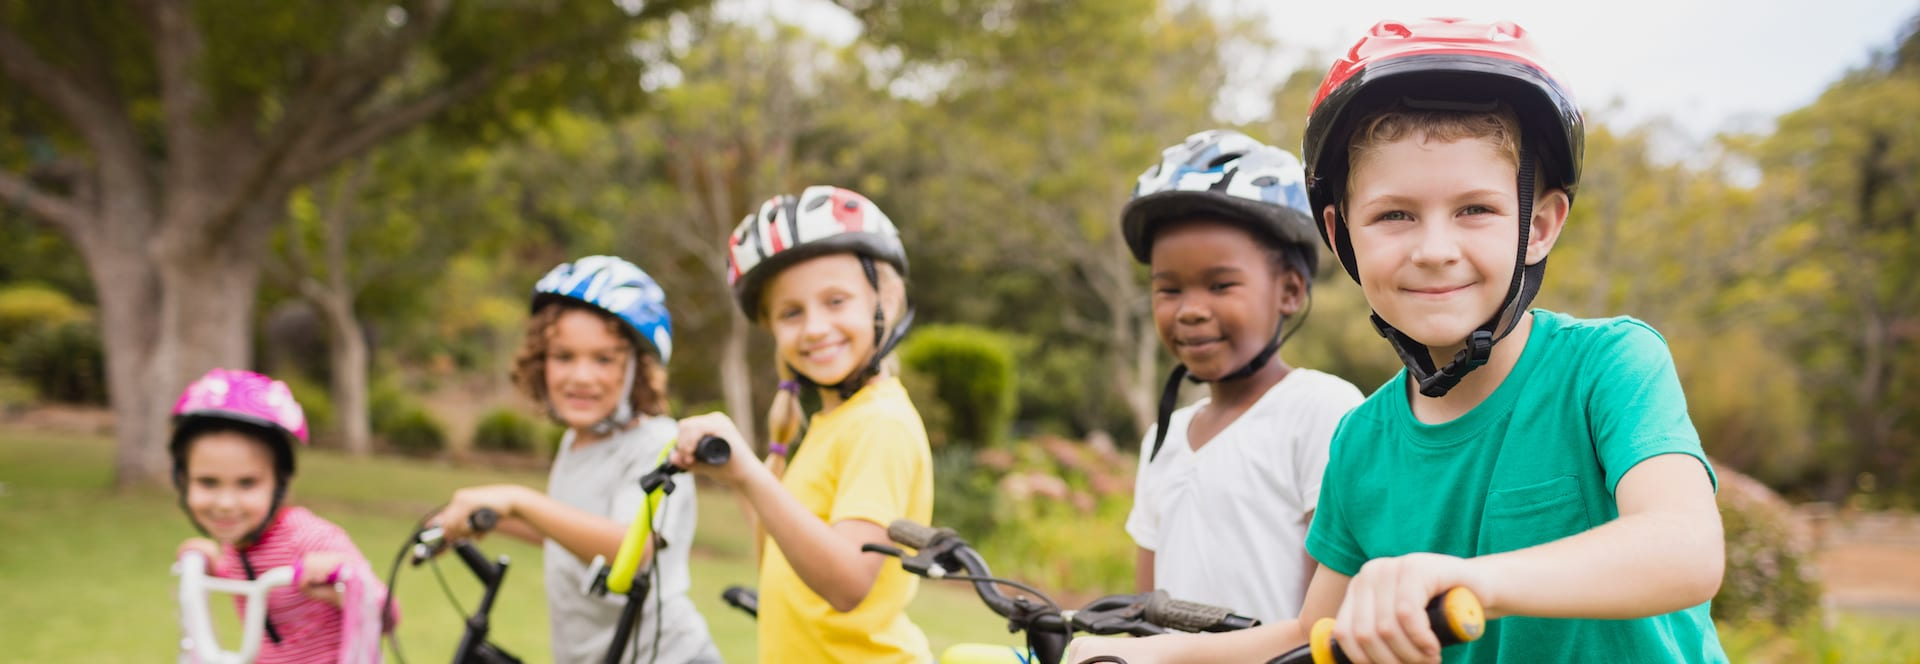 Bicycle Safety Accident Attorney